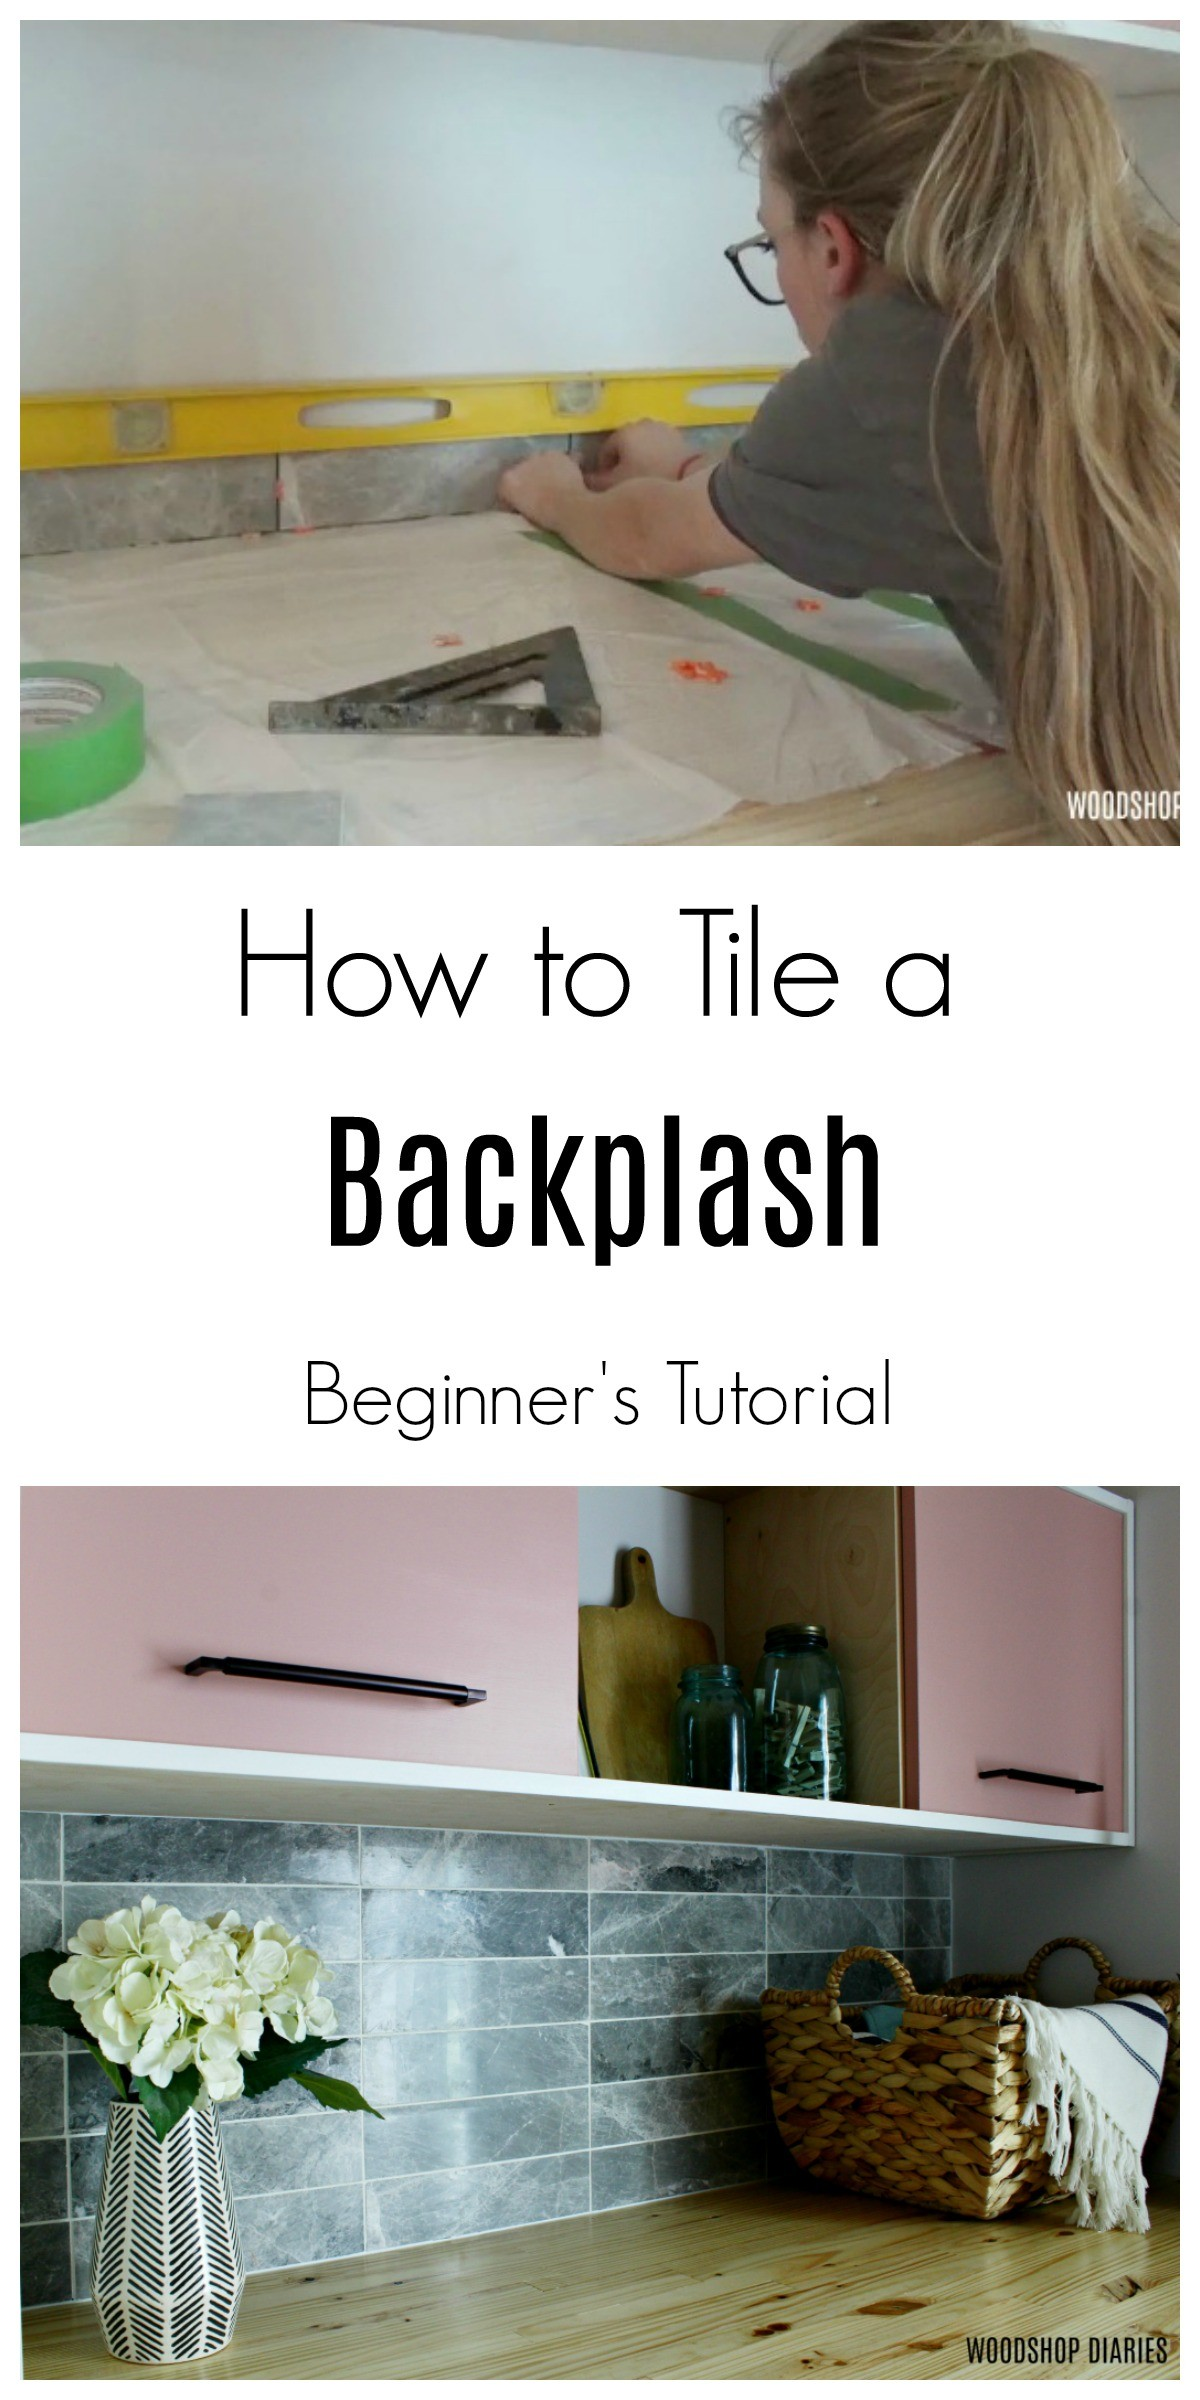 How to Tile a Backsplash Pin Image Graphic